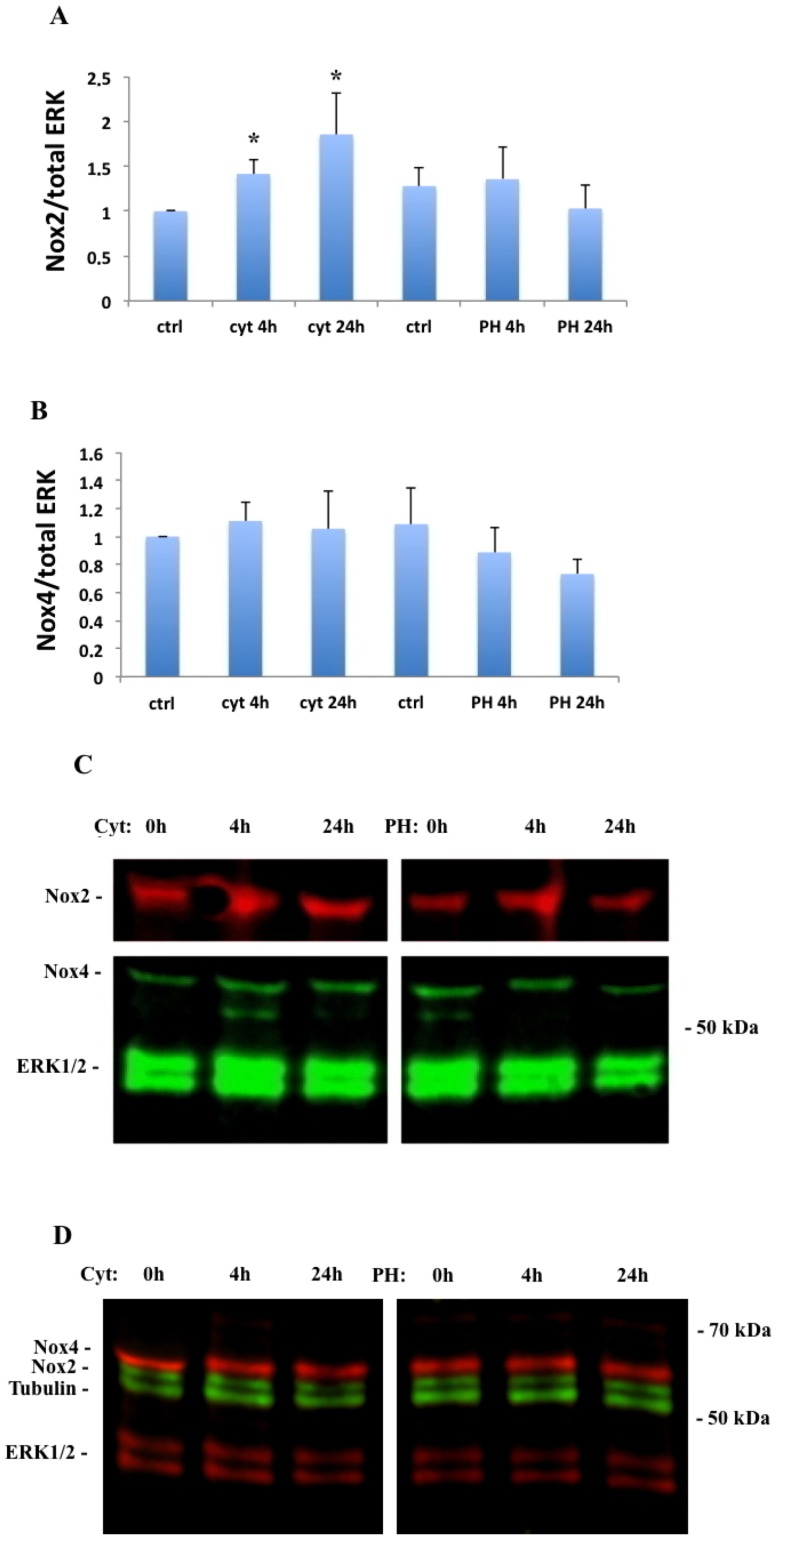 Immunoblot analysis of Nox2 and Nox4 in human islets (A-C) and EndoC- β H1 cells (D). Nox2 (A) and Nox4 (B) expression was assessed after 4h and 24h of IL-1β (20 ng/ml) + IFN-γ (20 ng/ml) (cyt) and palmitate (1.5 mM in 2% BSA) + high glucose (20 mM) (PH) exposure. The expression of Nox2 and Nox4 was normalized to total ERK, which was used as a loading control. Results are means ± S.E.M for 5 independent experiments. * denotes P